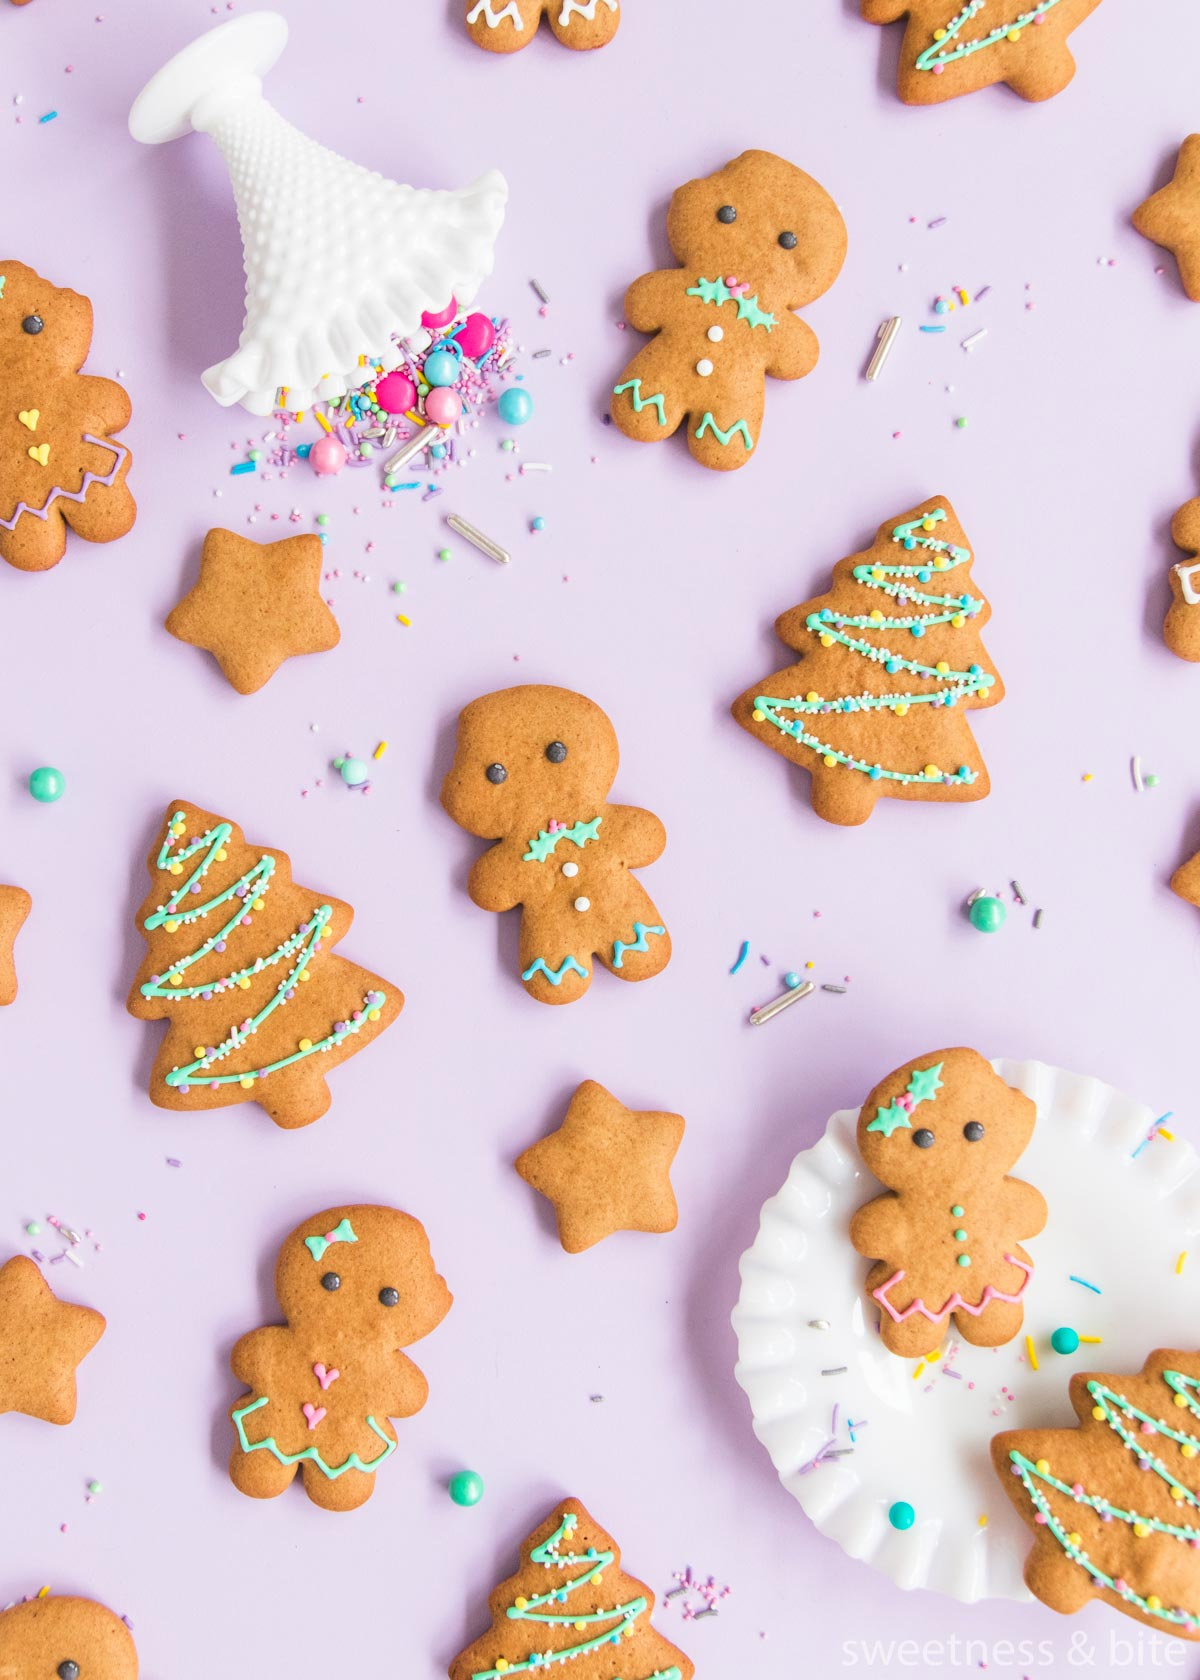 Gluten free gingerbread men and women with gingerbread Christmas tree and star cookies on a purple background, surrounded by pastel and metallic sprinkles.